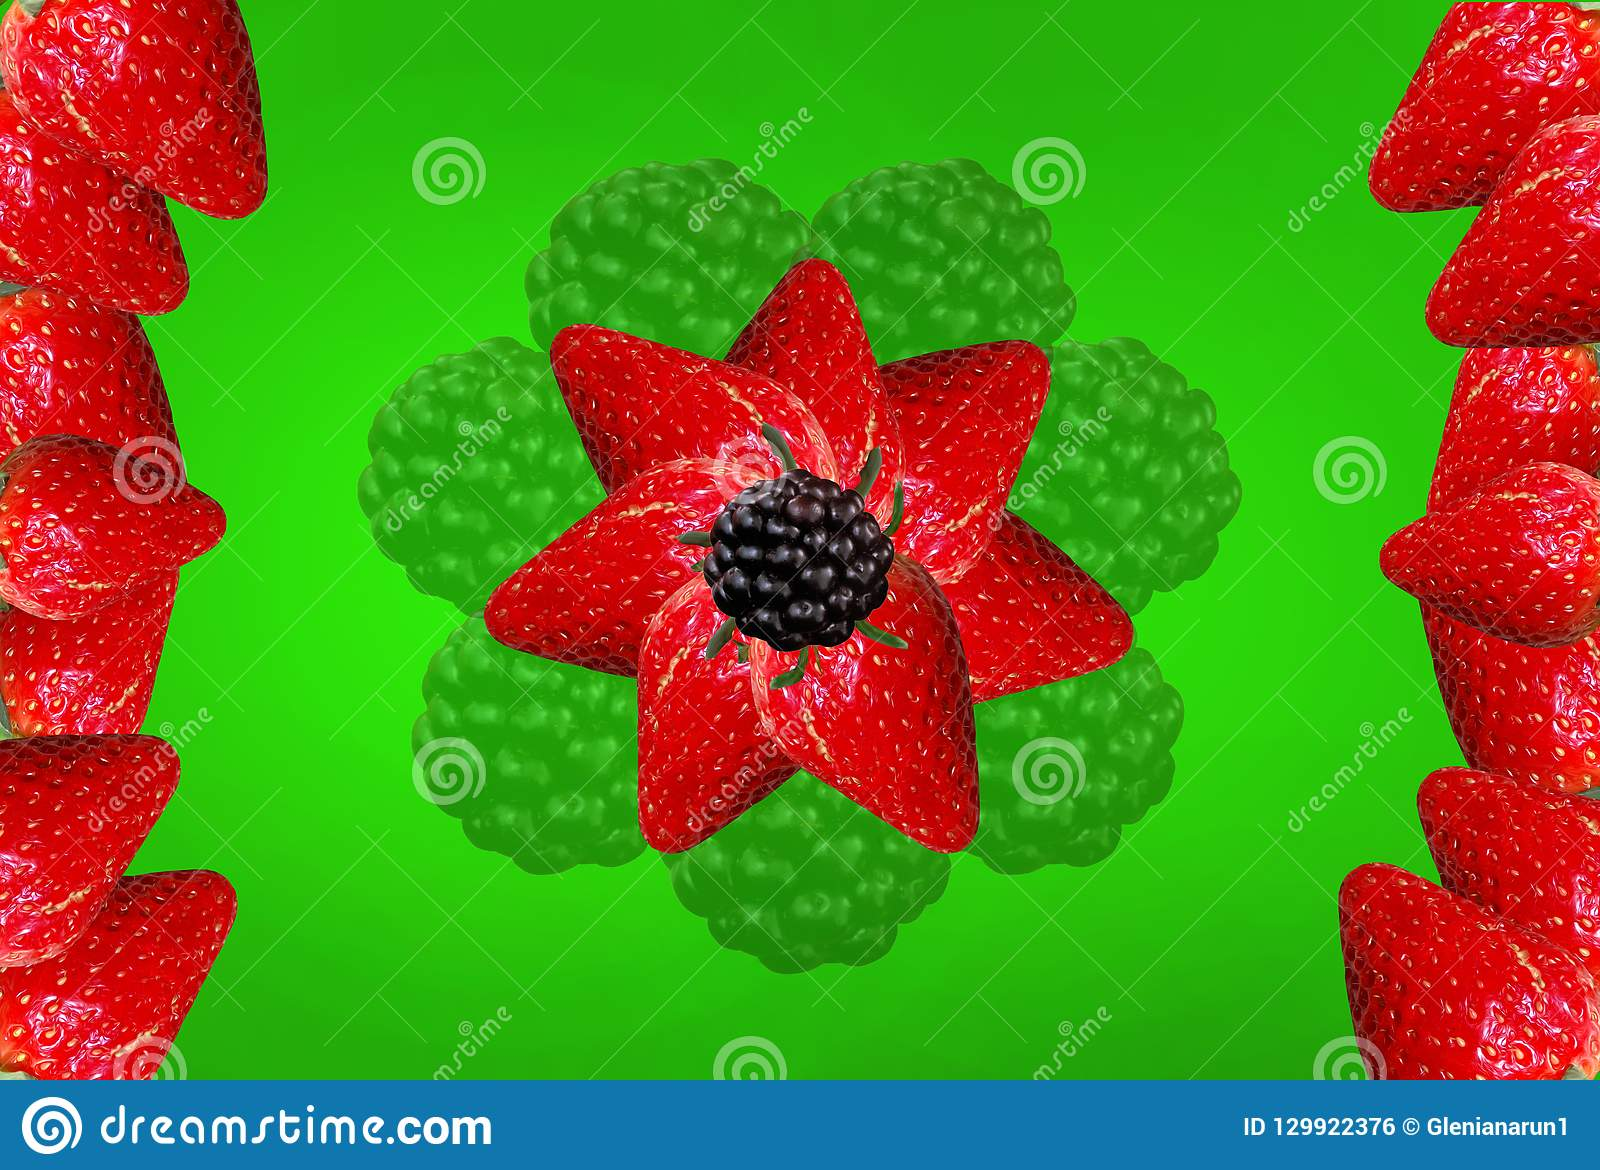 Strawberry blackberry flower on a green background for printing on a glass table. Vector clipart.